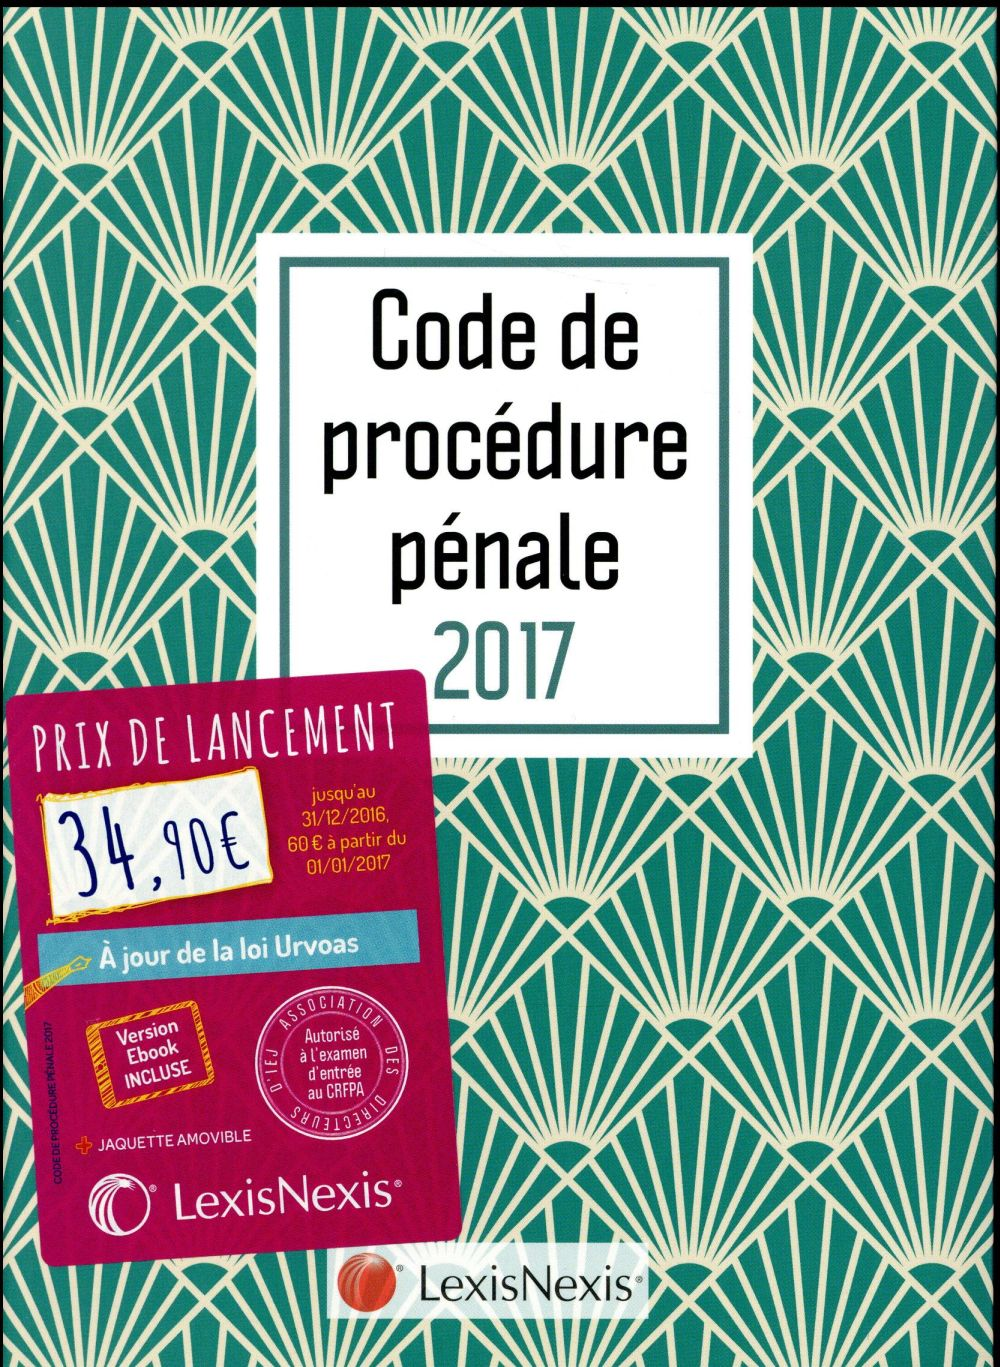 CODE DE PROCEDURE PENALE 2017 JAQUETTE GRAPHIK EMERAUDE - VERSION EBOOK INCLUSE